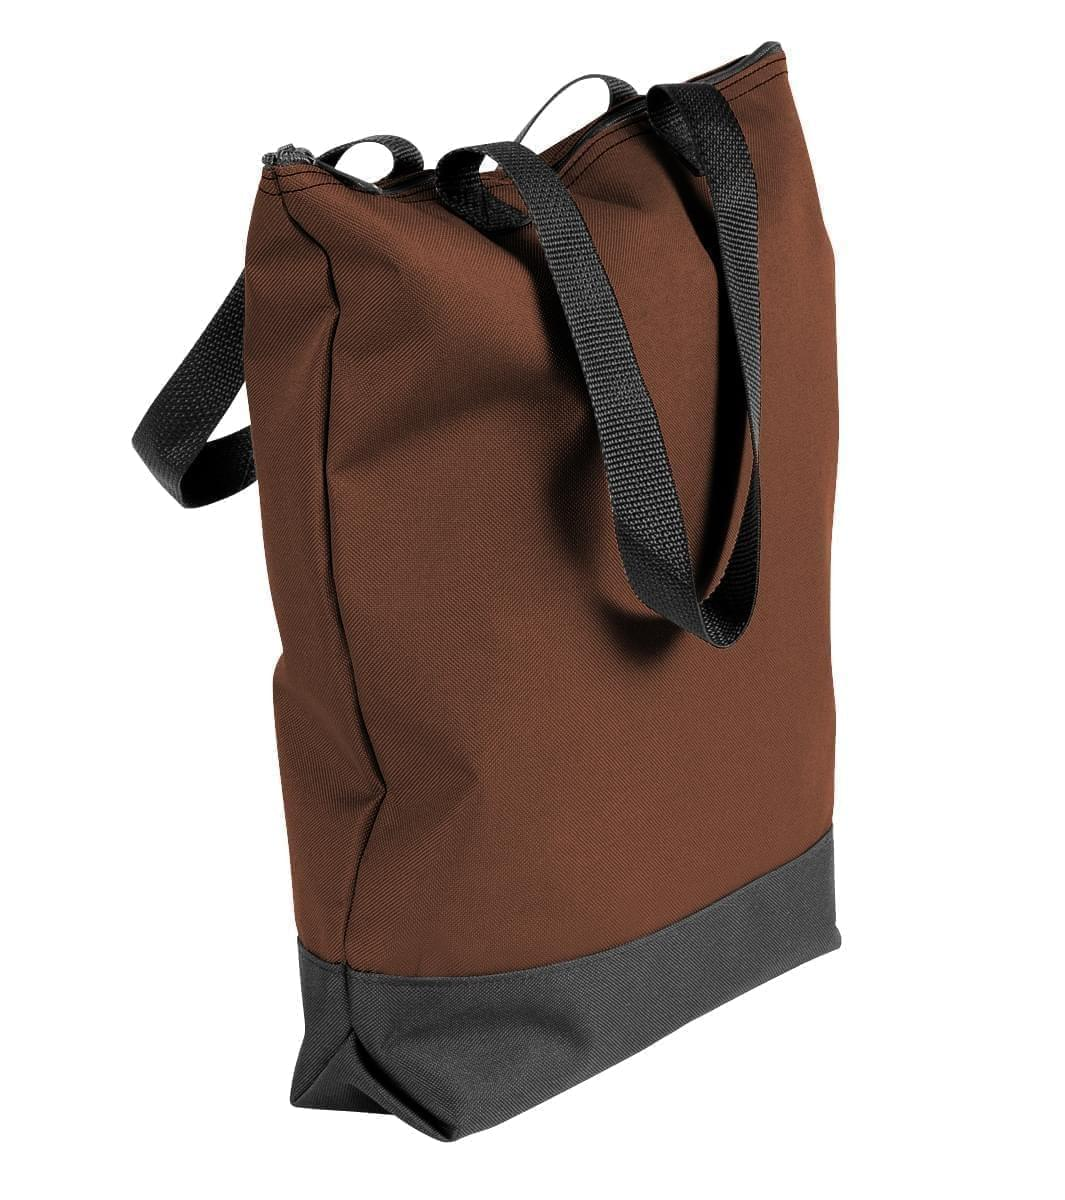 USA Made Canvas Portfolio Tote Bags, Brown-Black, 1AAMX1UAAR